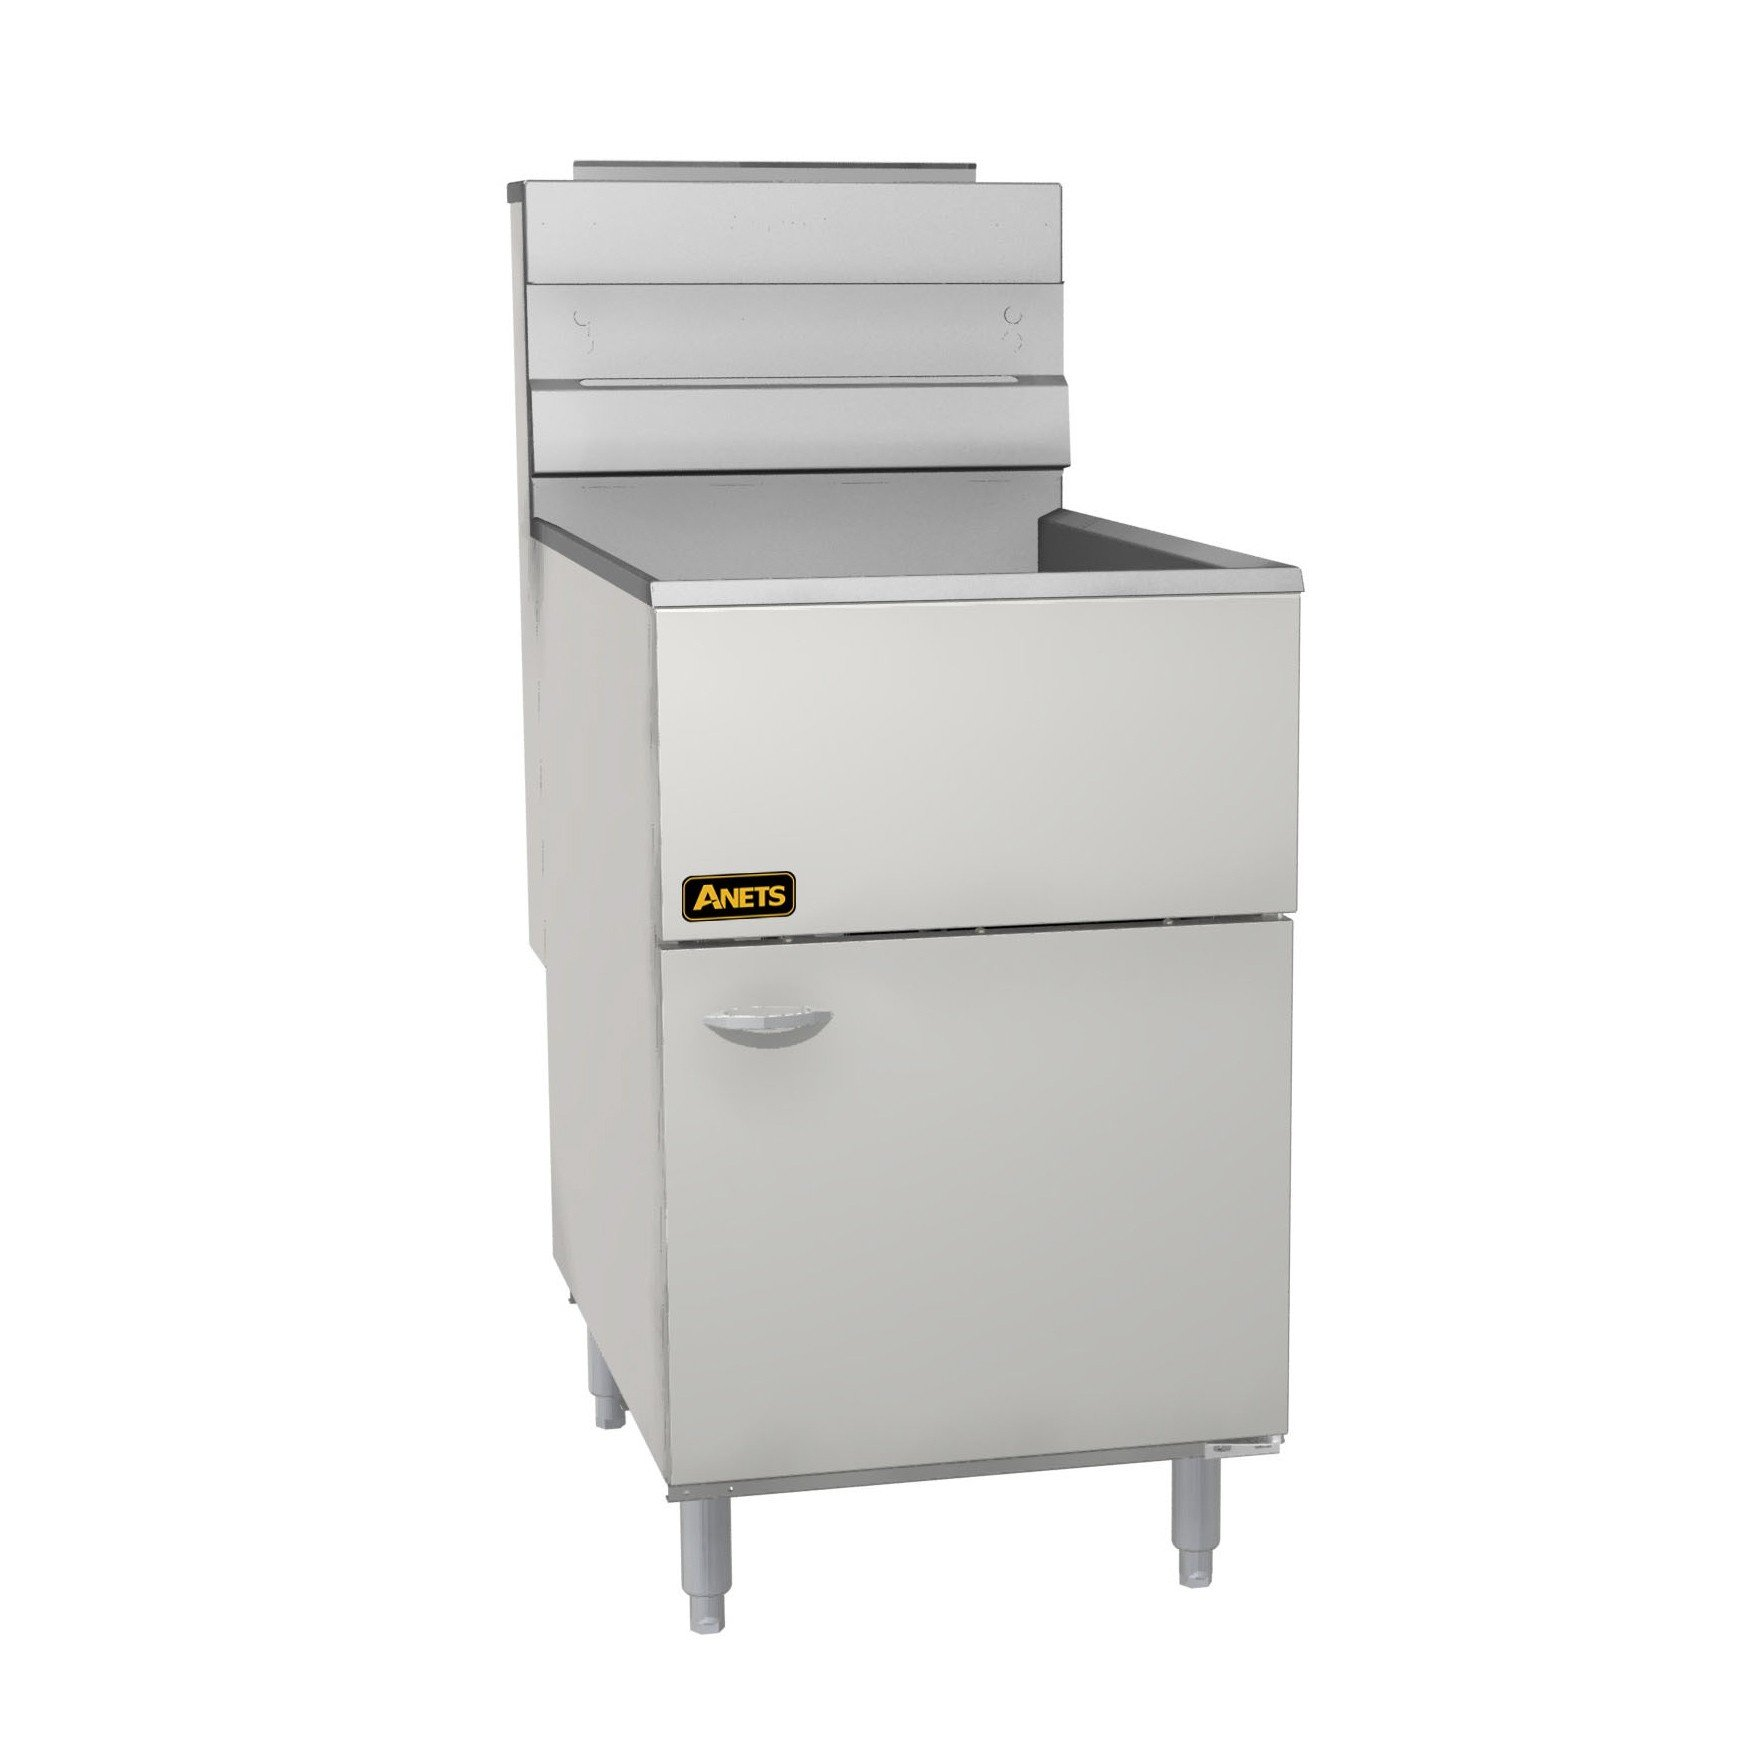 ANETS 70AS silver fryer series